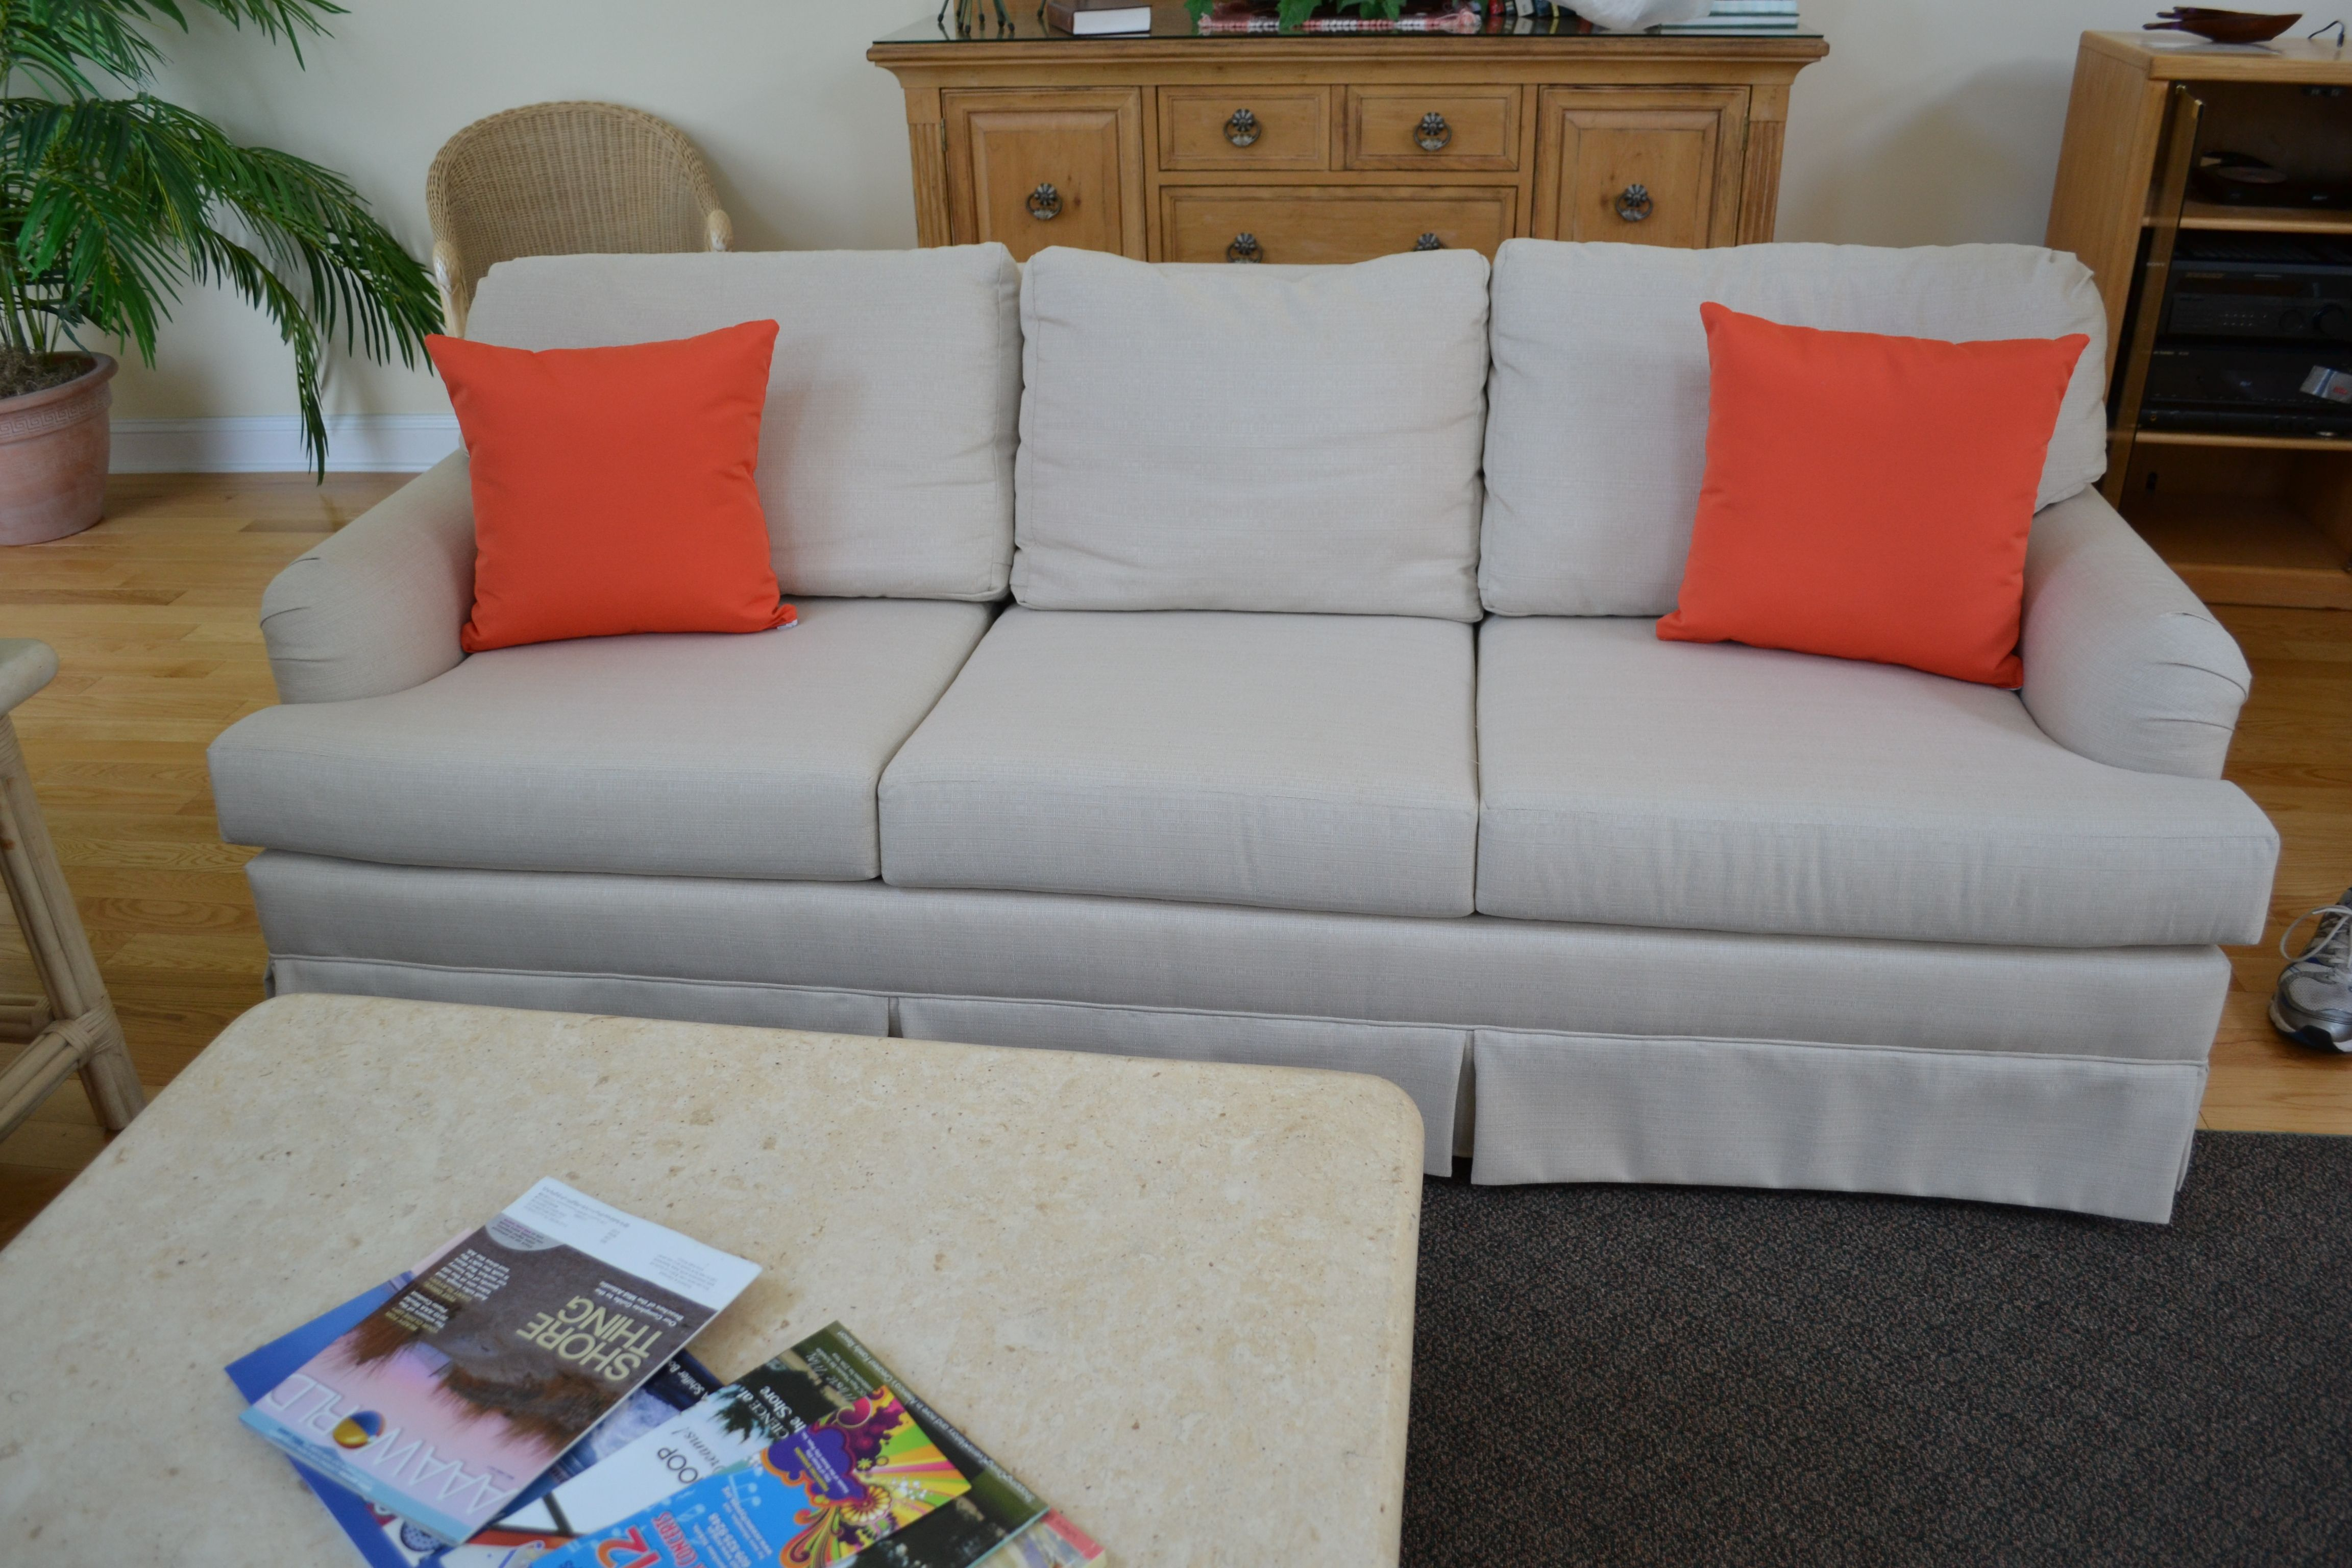 This Three Cushion Sofa Was Reupholstered In Sunbrella Linen Antique Beige The Pillows Are Sunbrella Canv Cushions On Sofa Sofa Cushion Covers Cushion Covers